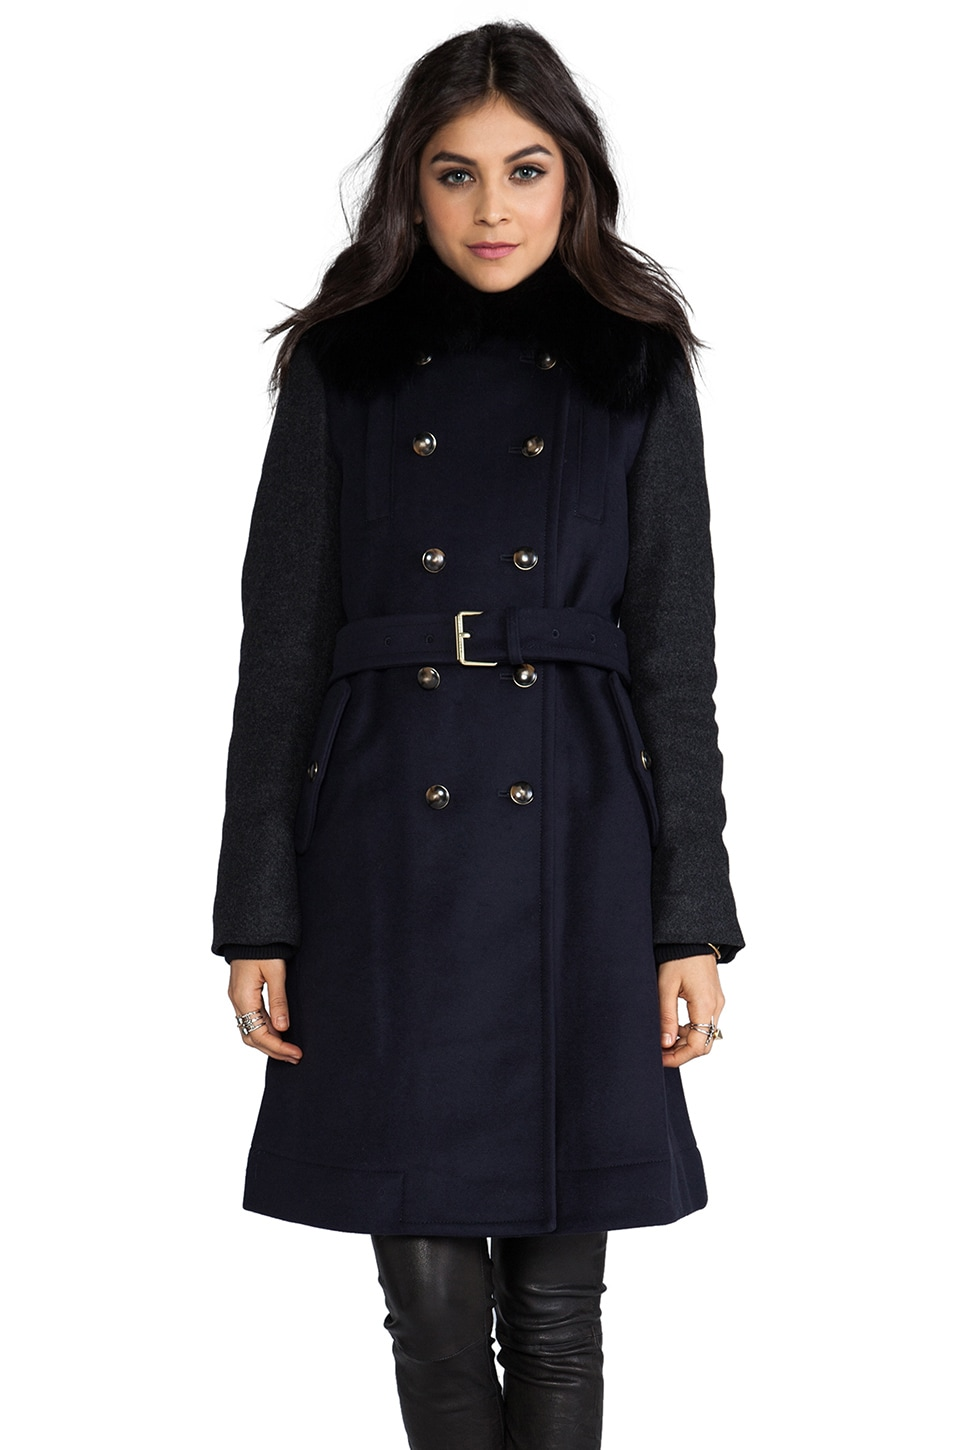 Marc by Marc Jacobs Nicolette Colorblocked Wool Coat in General Navy Multi